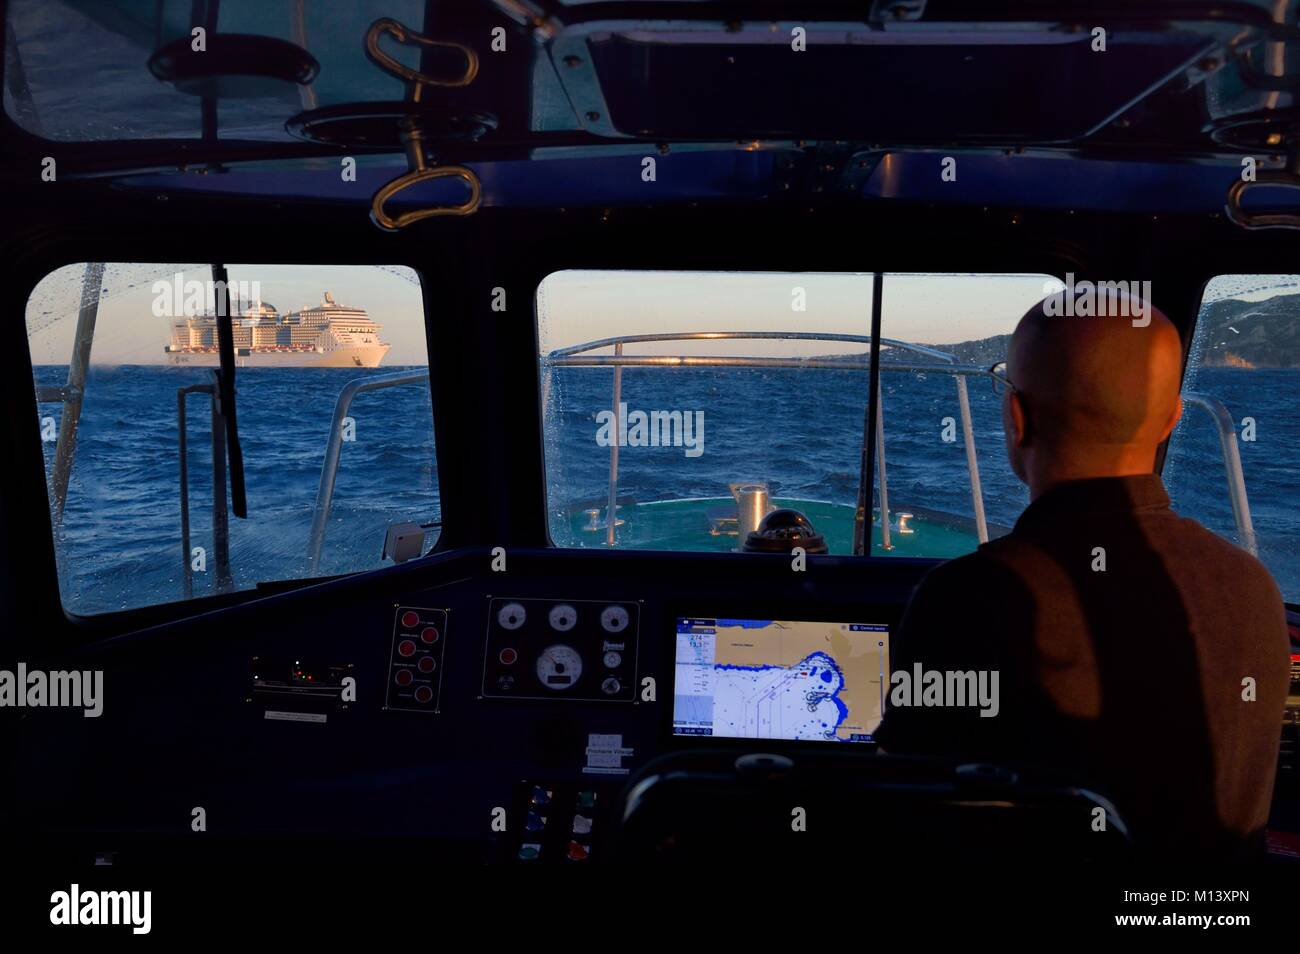 France, Bouches du Rhone, Marseille, the boss of Pilot boat Sylvain joining a cruise ship - Stock Image